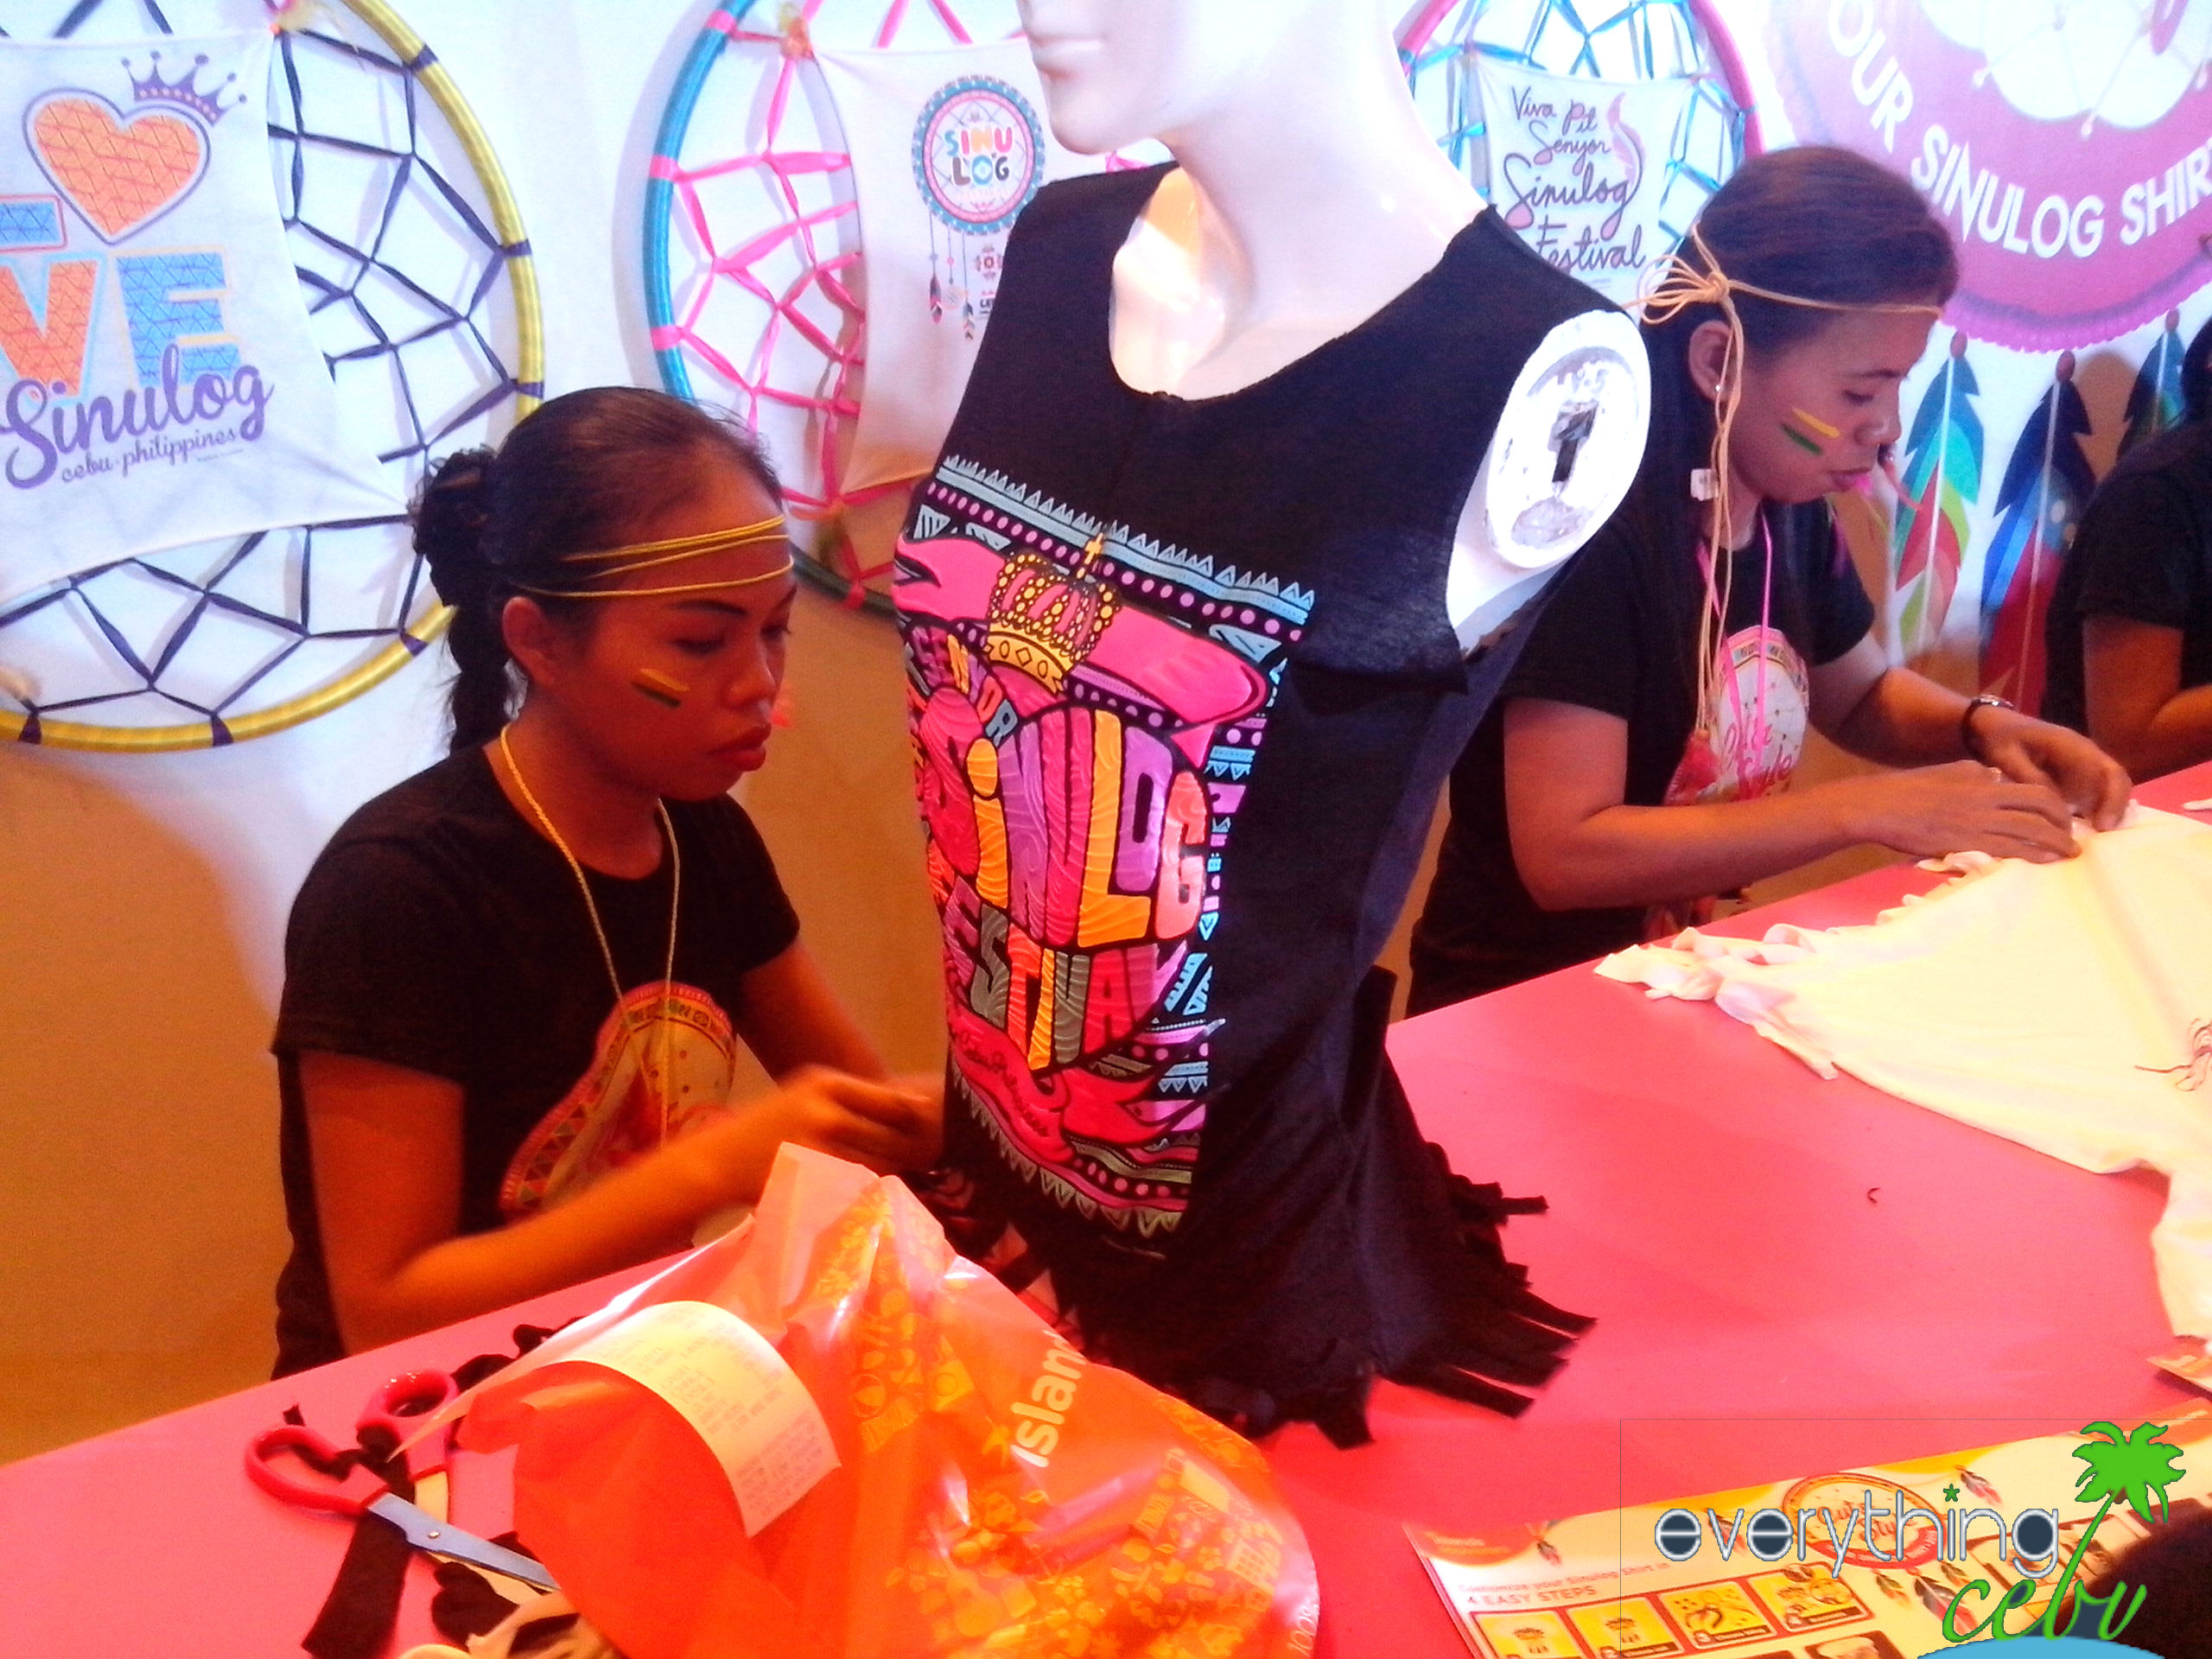 TESDA dressmaking students styling the Sinulog shirts for Cut and Style 2015.